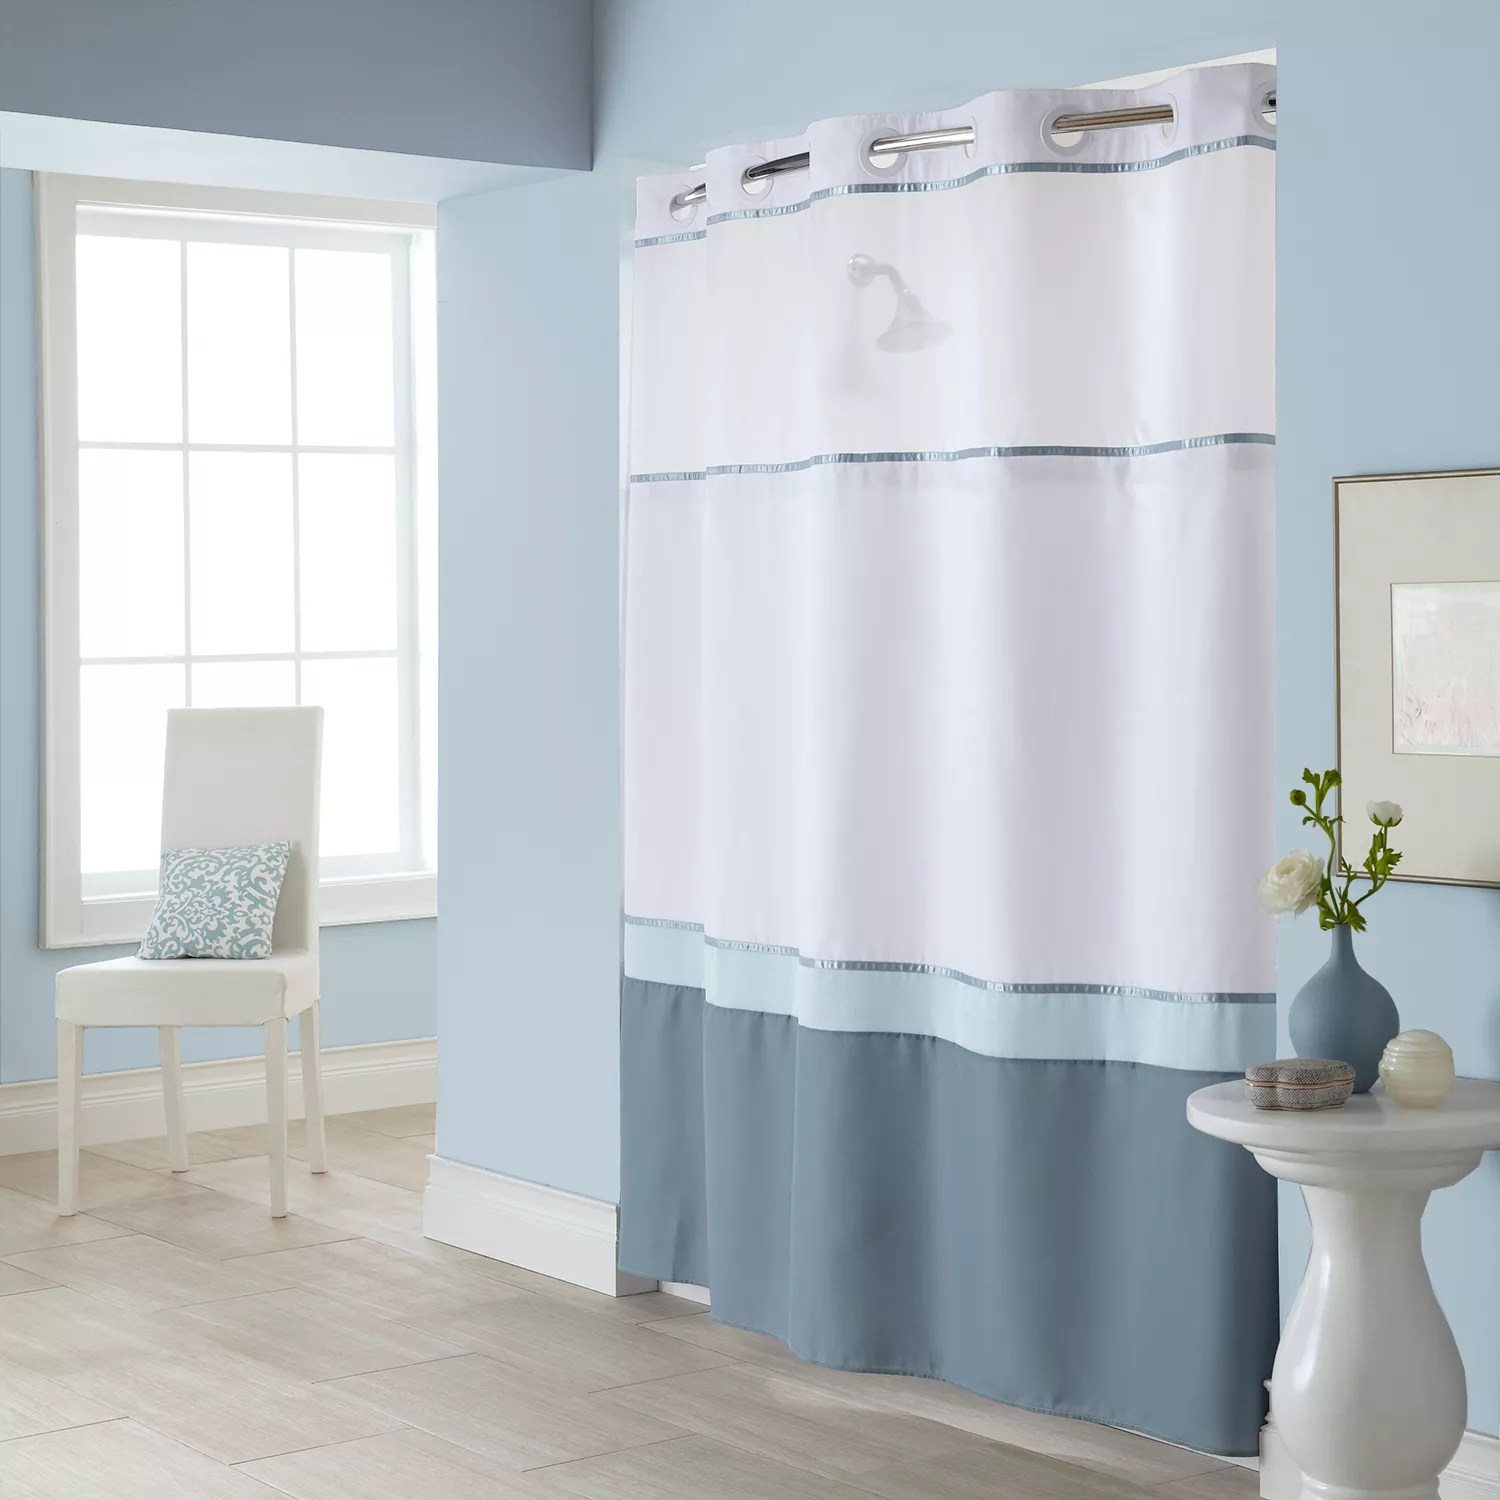 Hookless Shower Curtains Shower Curtains & Accessories Bathroom